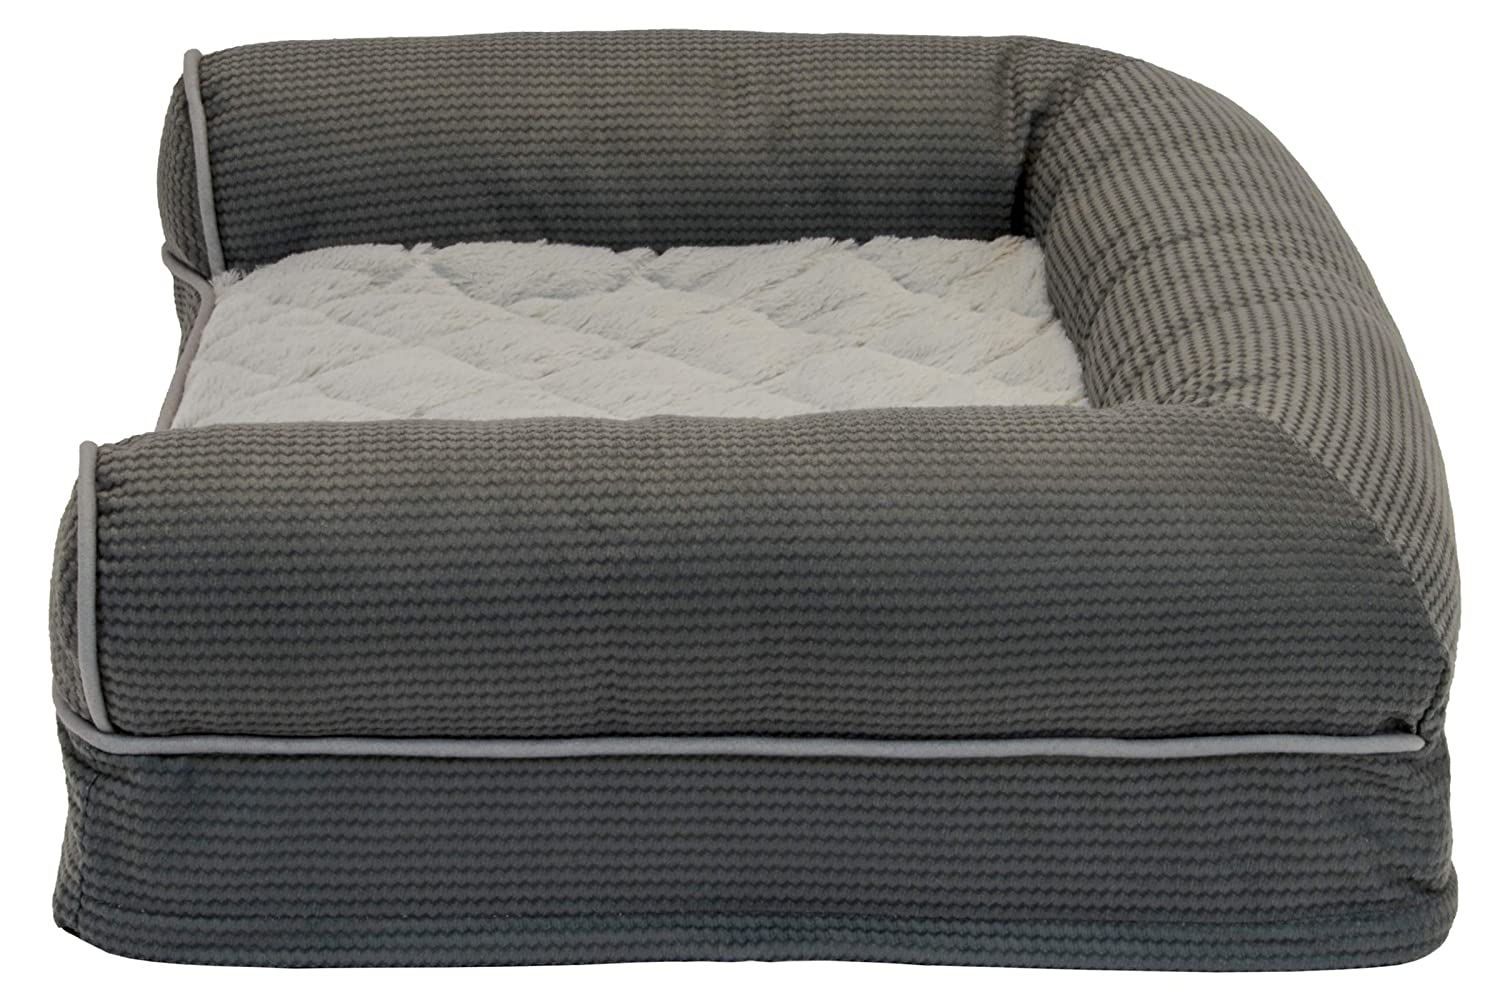 Sealy Premium Ultra Plush Orthopedic Sofa-Style Couch Bolster Dog Bed